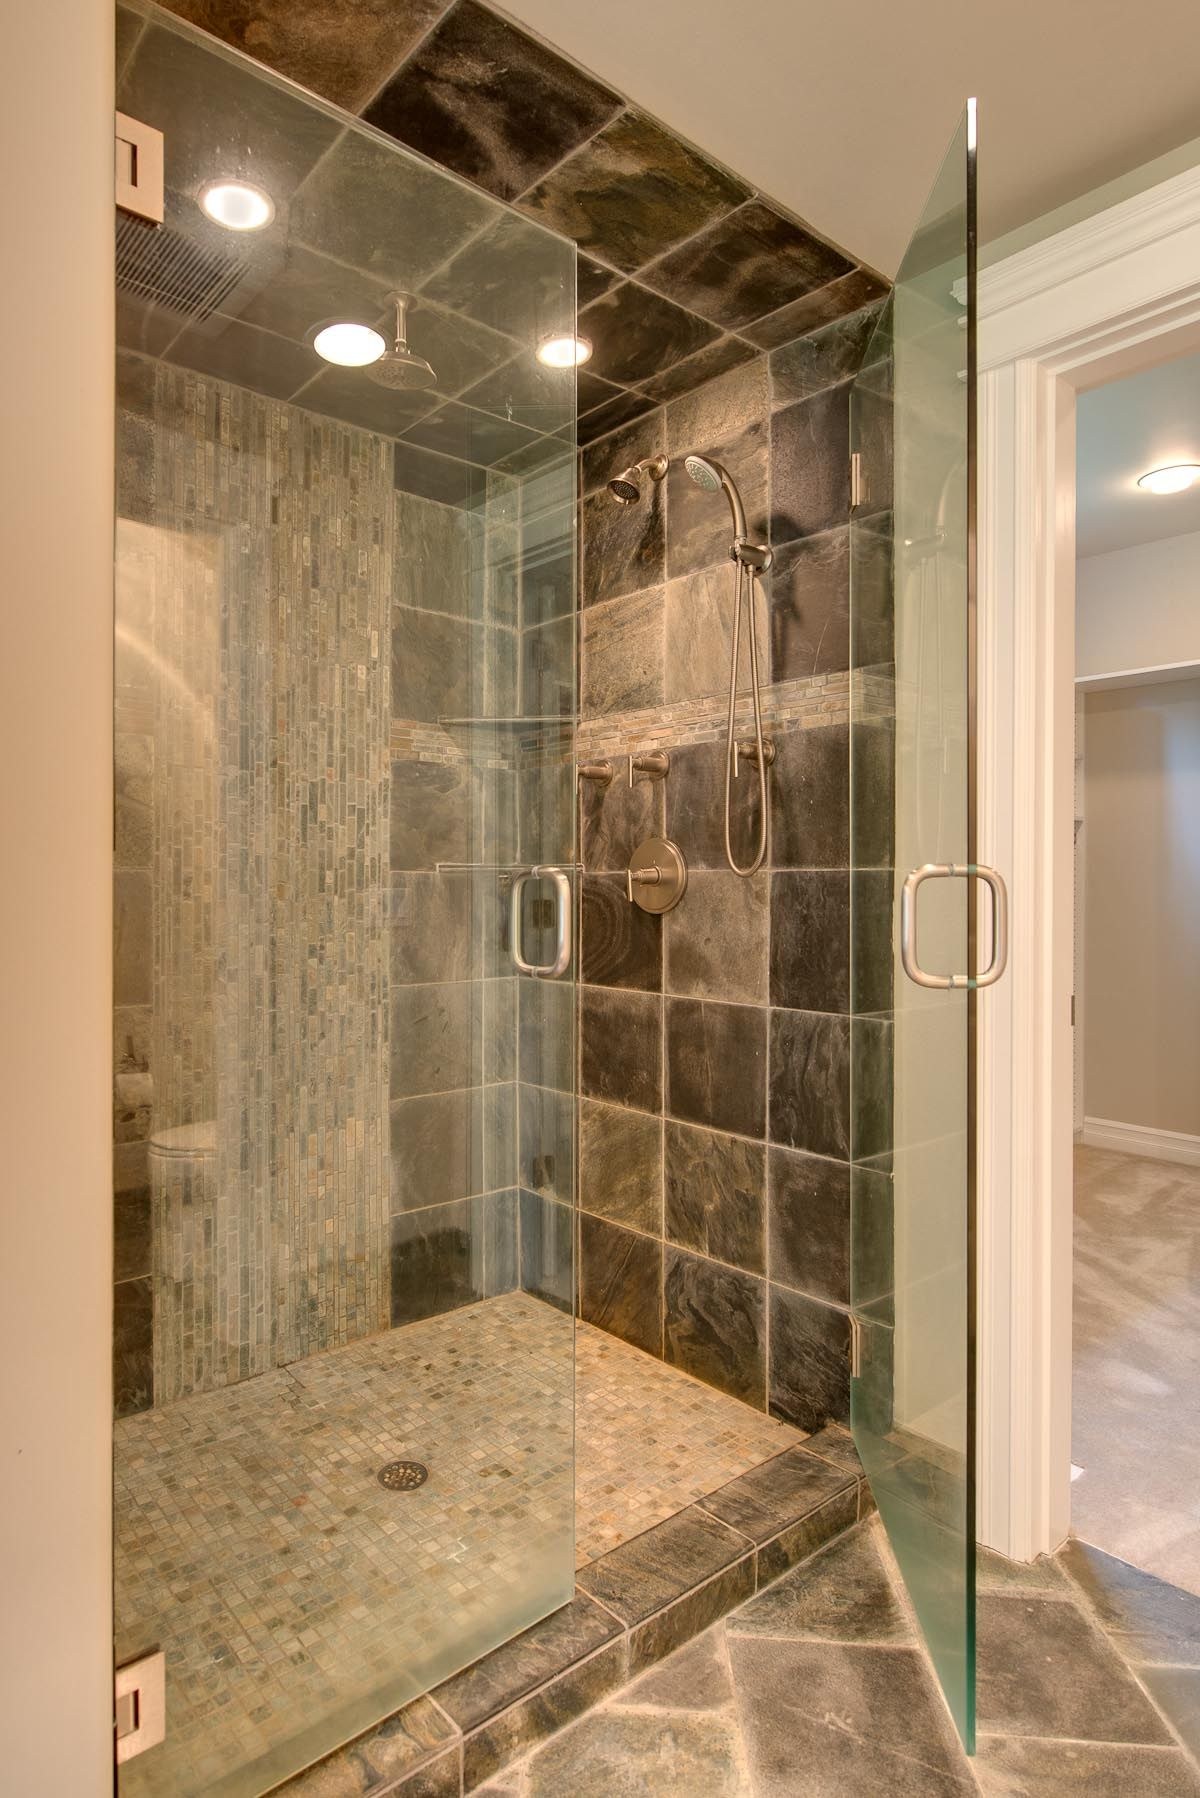 The Charming Bathroom Tile Shower Designs Diy Bathroom Remodel Eas - Whole bathroom remodel